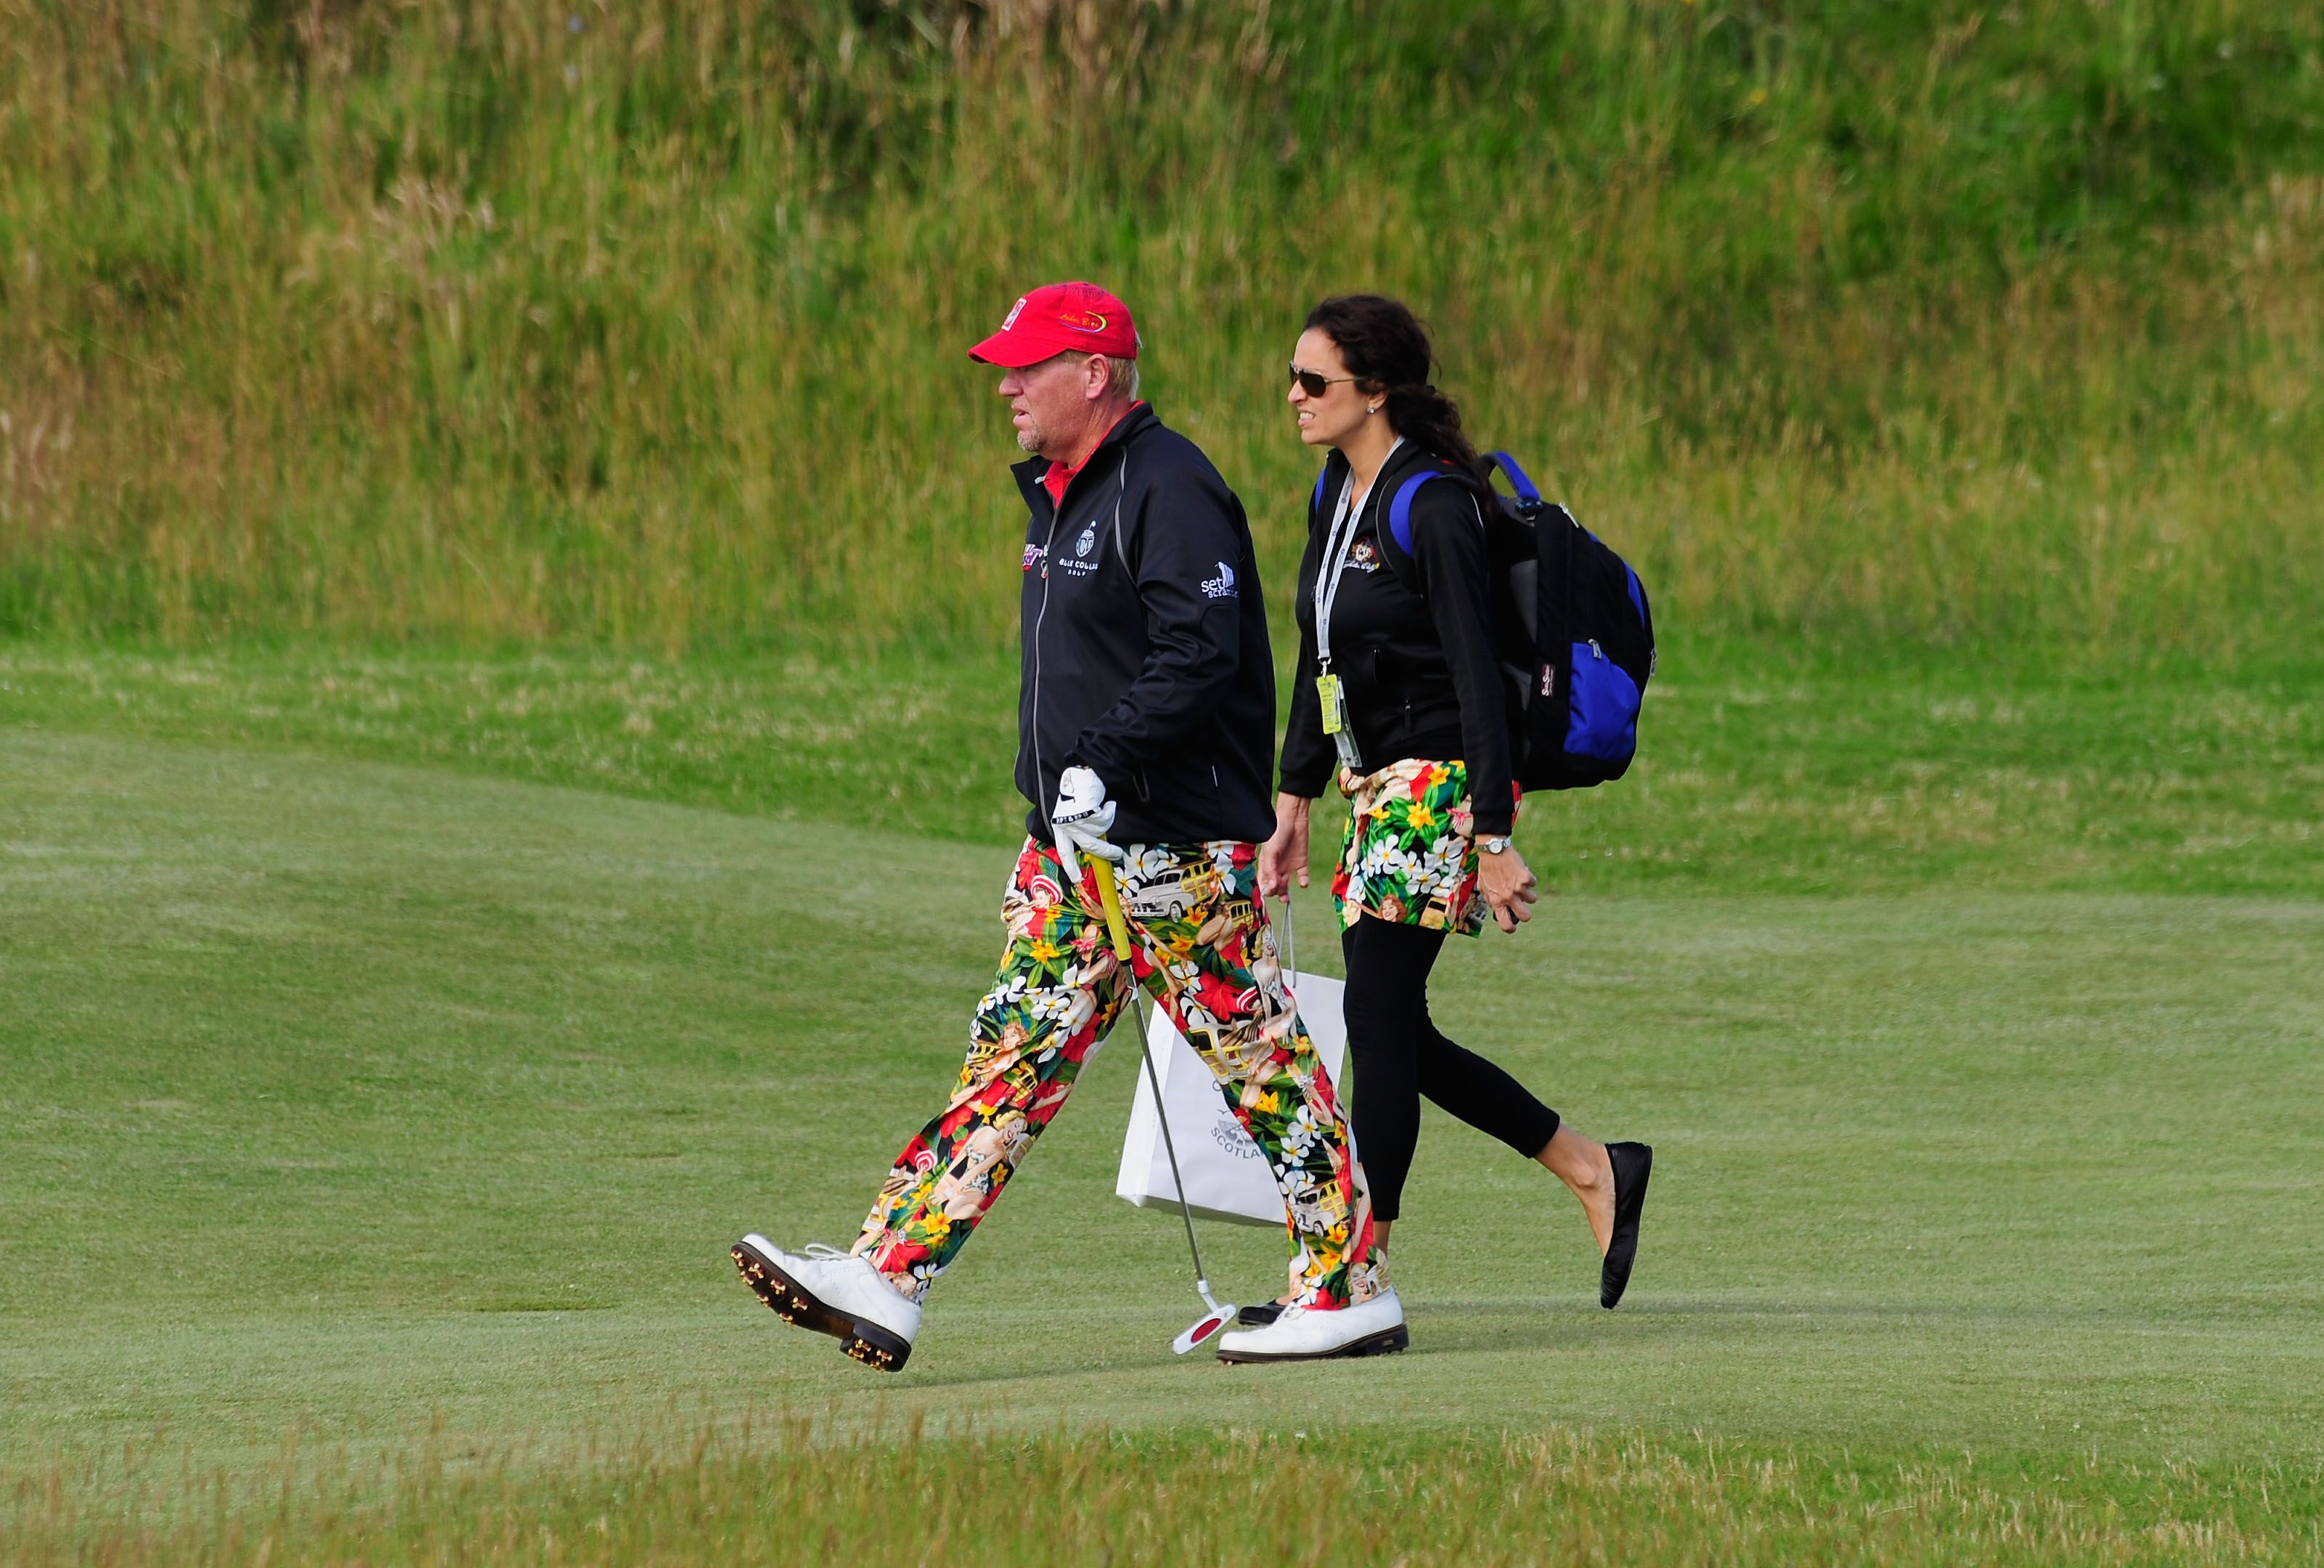 Daly in Loudmouth trousers and with his then-girlfriend Anna Cladakis at the 2010 Open Championship.